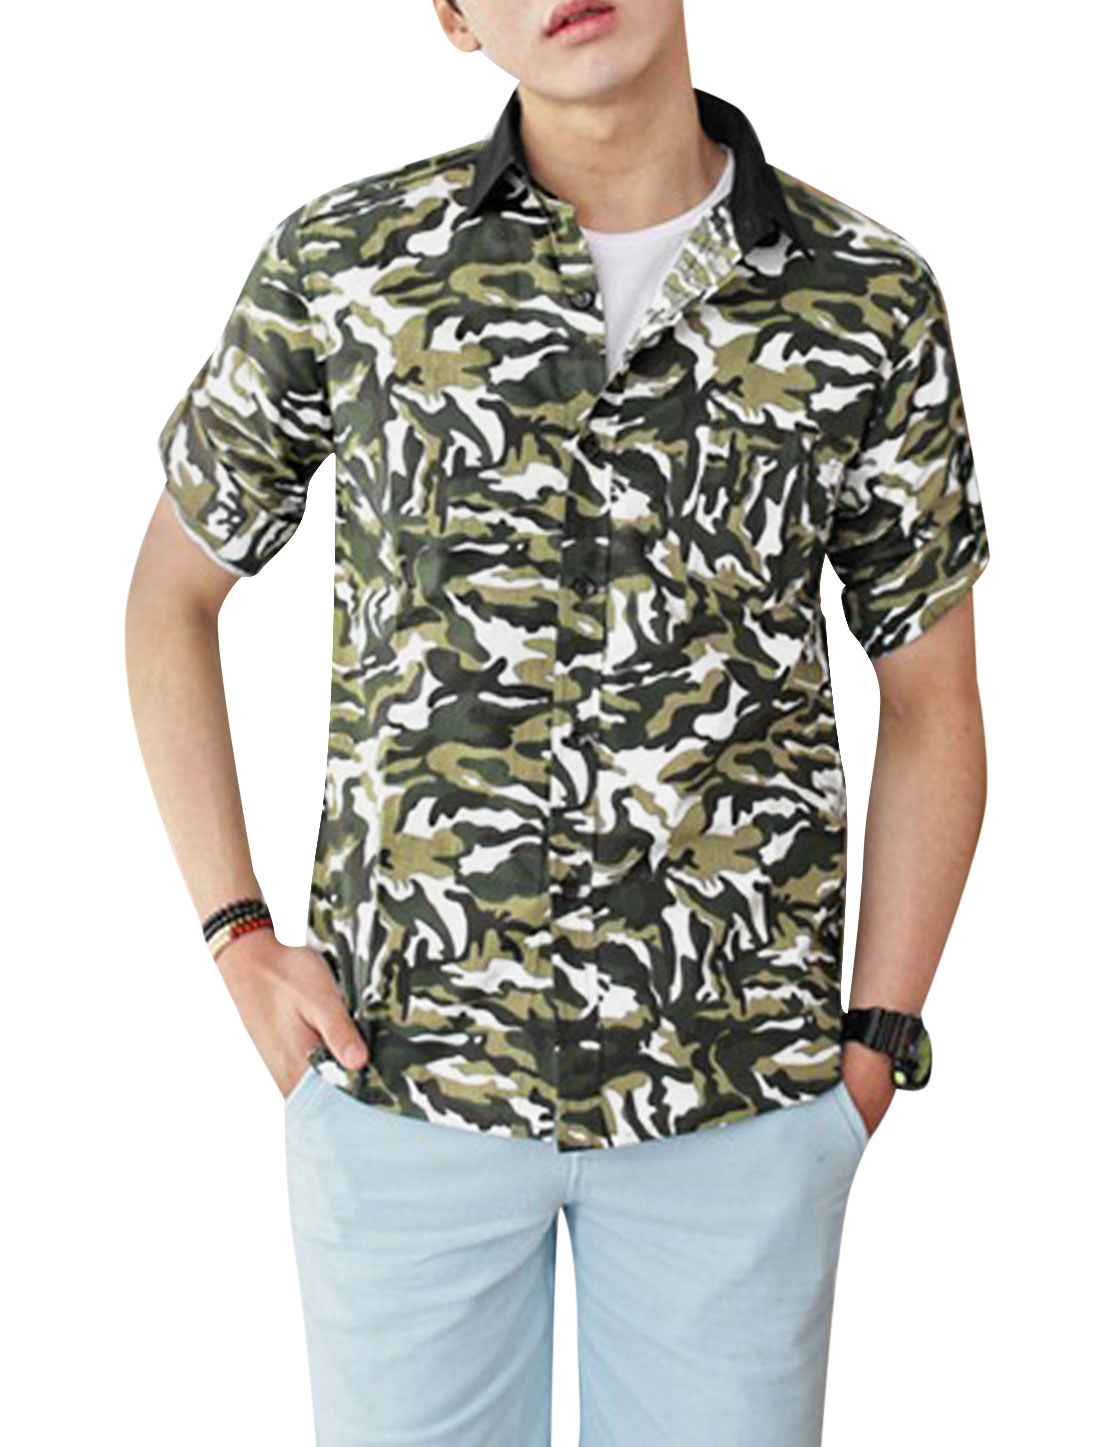 Men 3/4 Sleeve Camouflage Pattern Trendy Slim Top Shirt Black White M